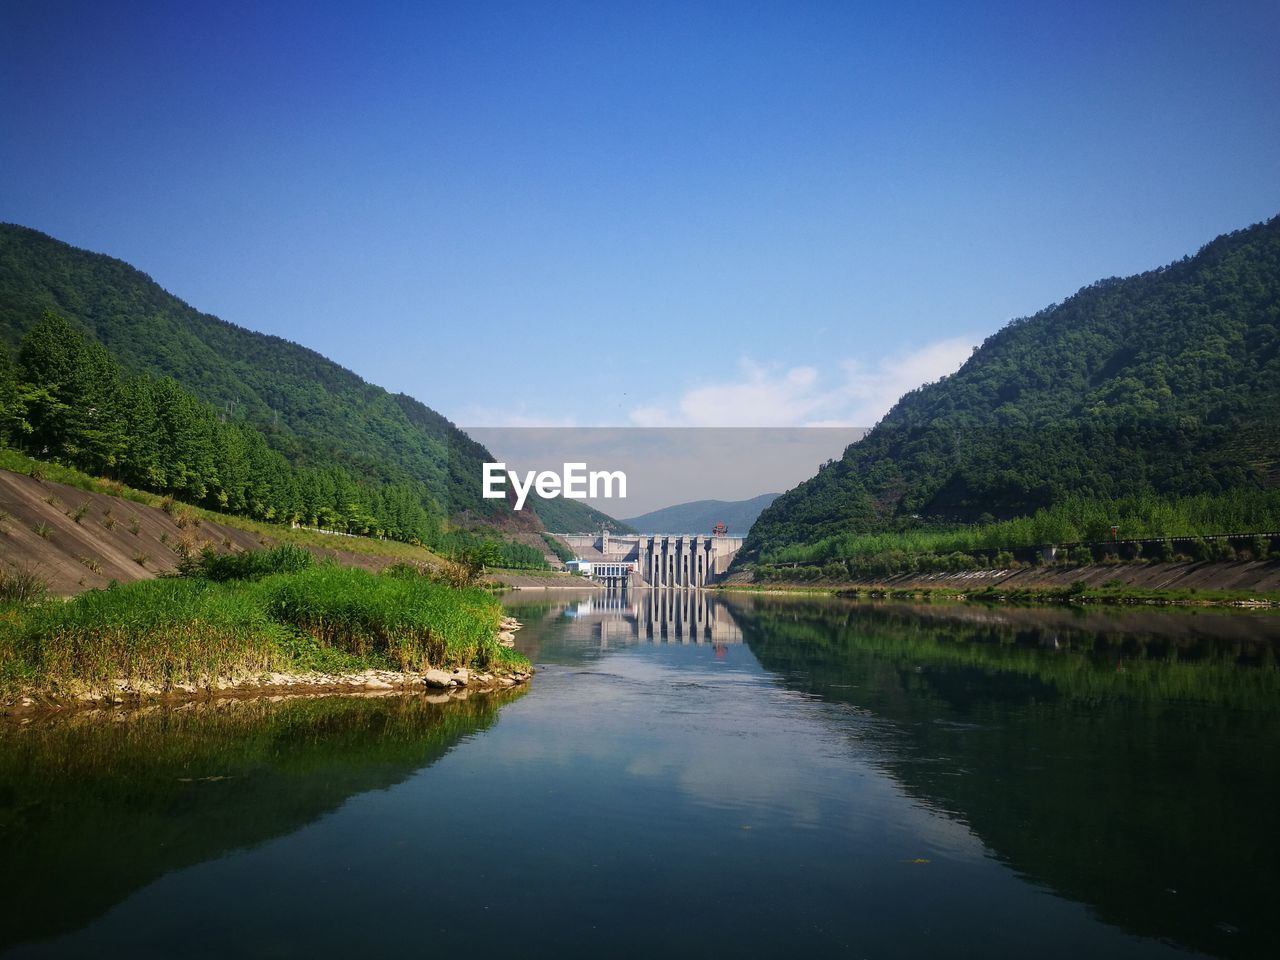 Scenic View Of River By Mountains Against Clear Blue Sky